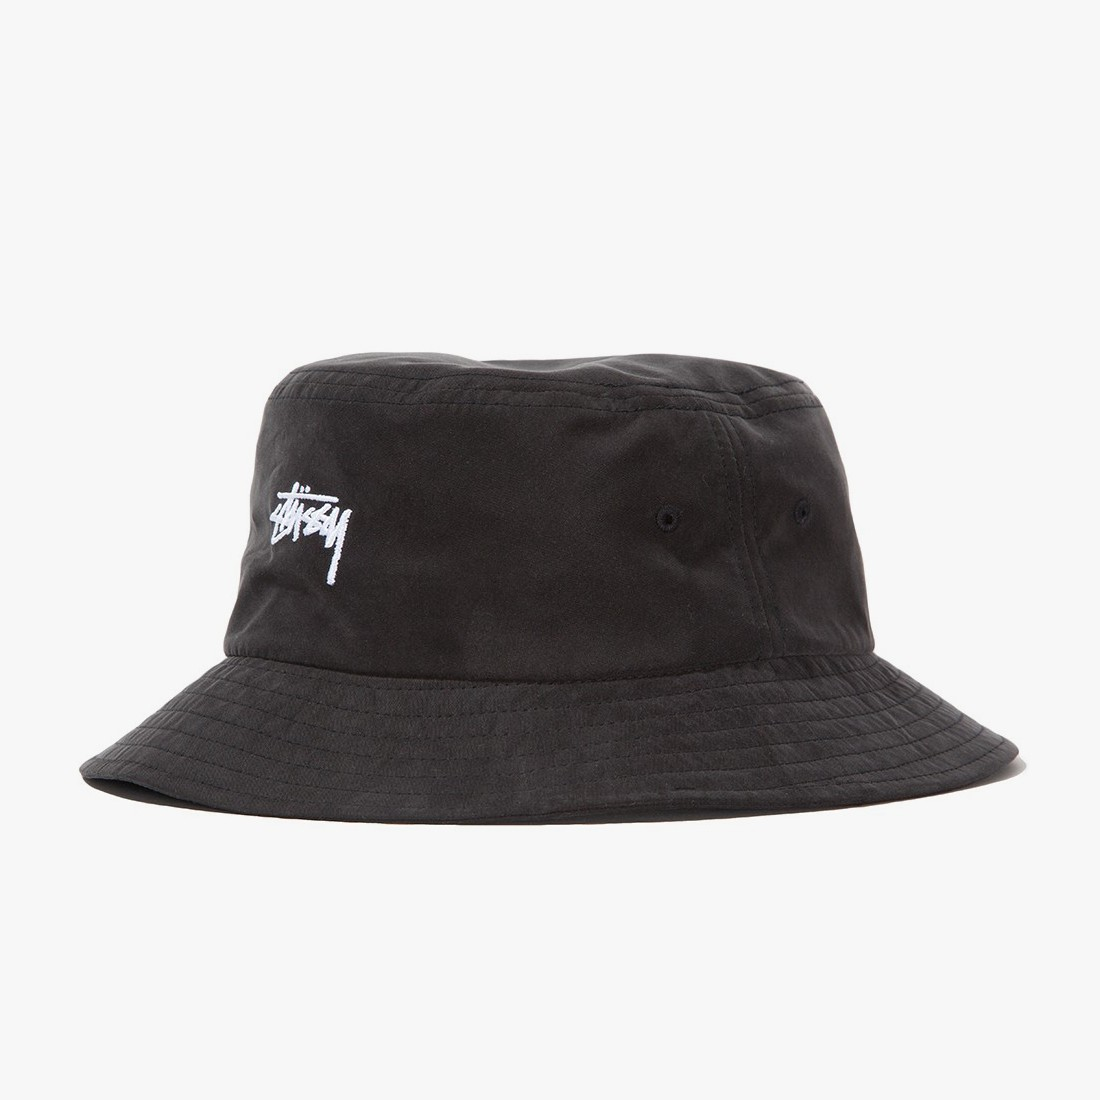 3b5ccdc55fd Stüssy Stock Bucket Hat Black